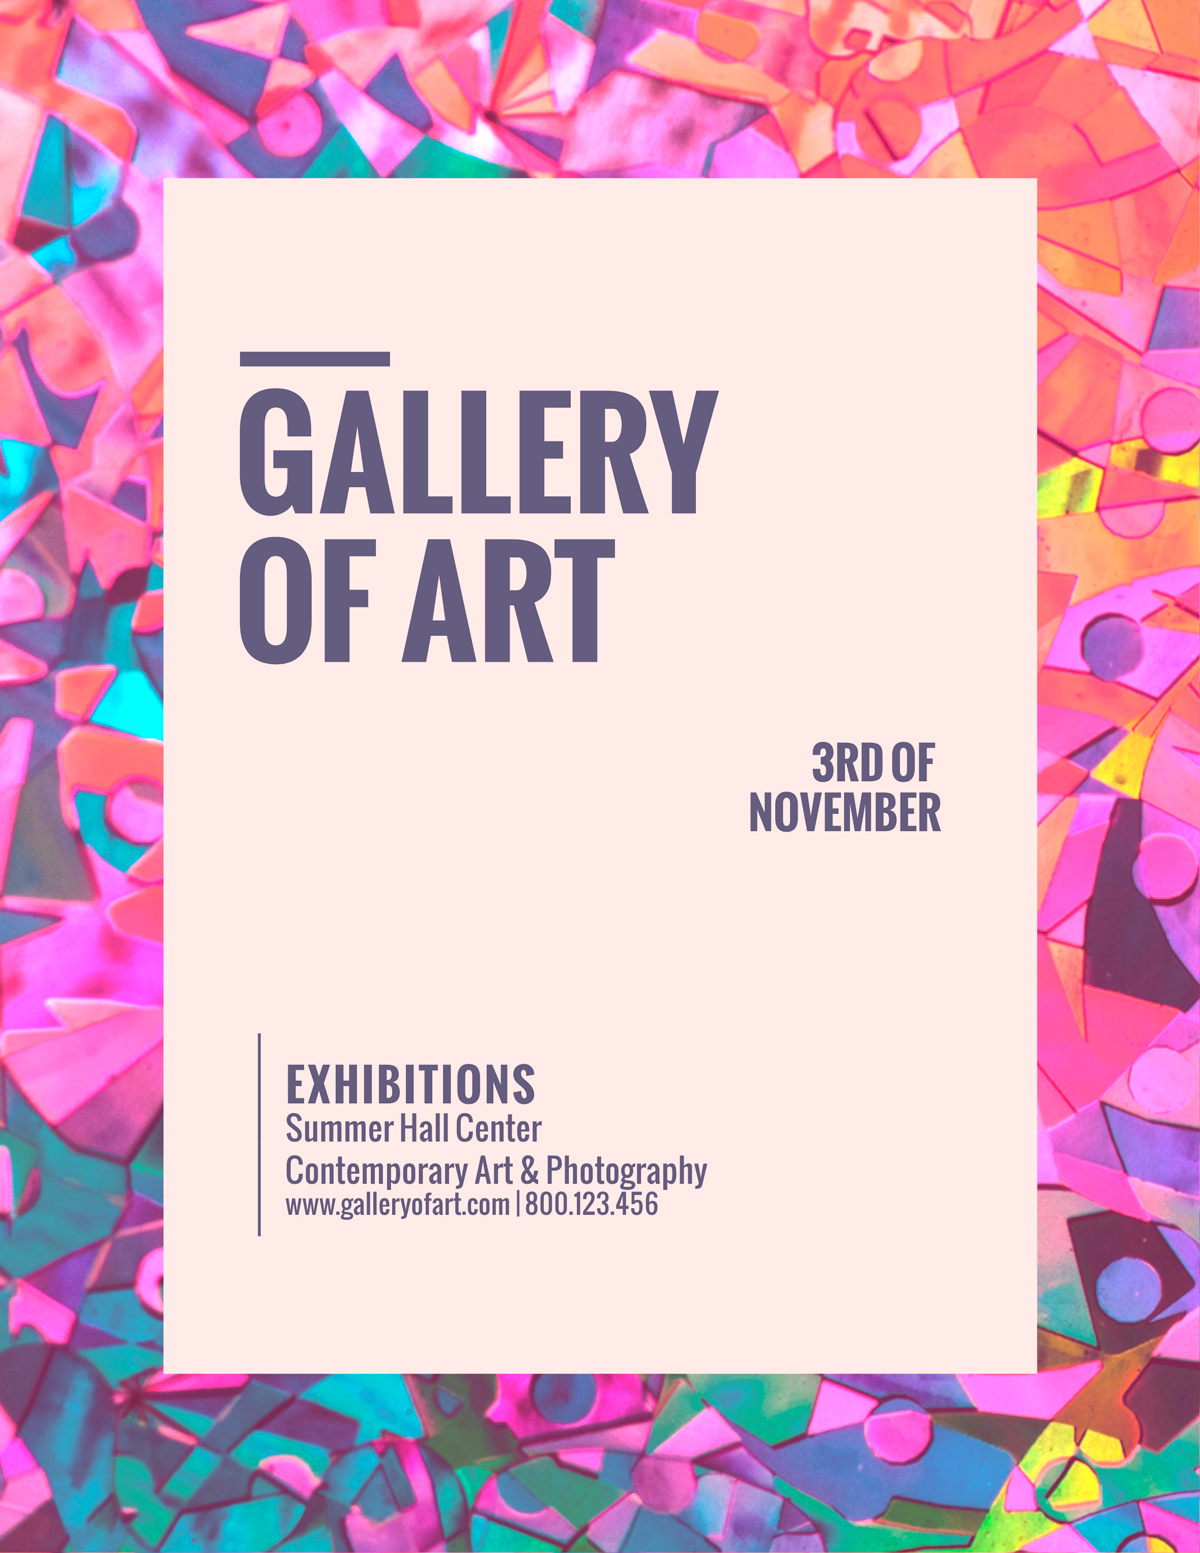 A simple and colorful flyer for an art gallery.